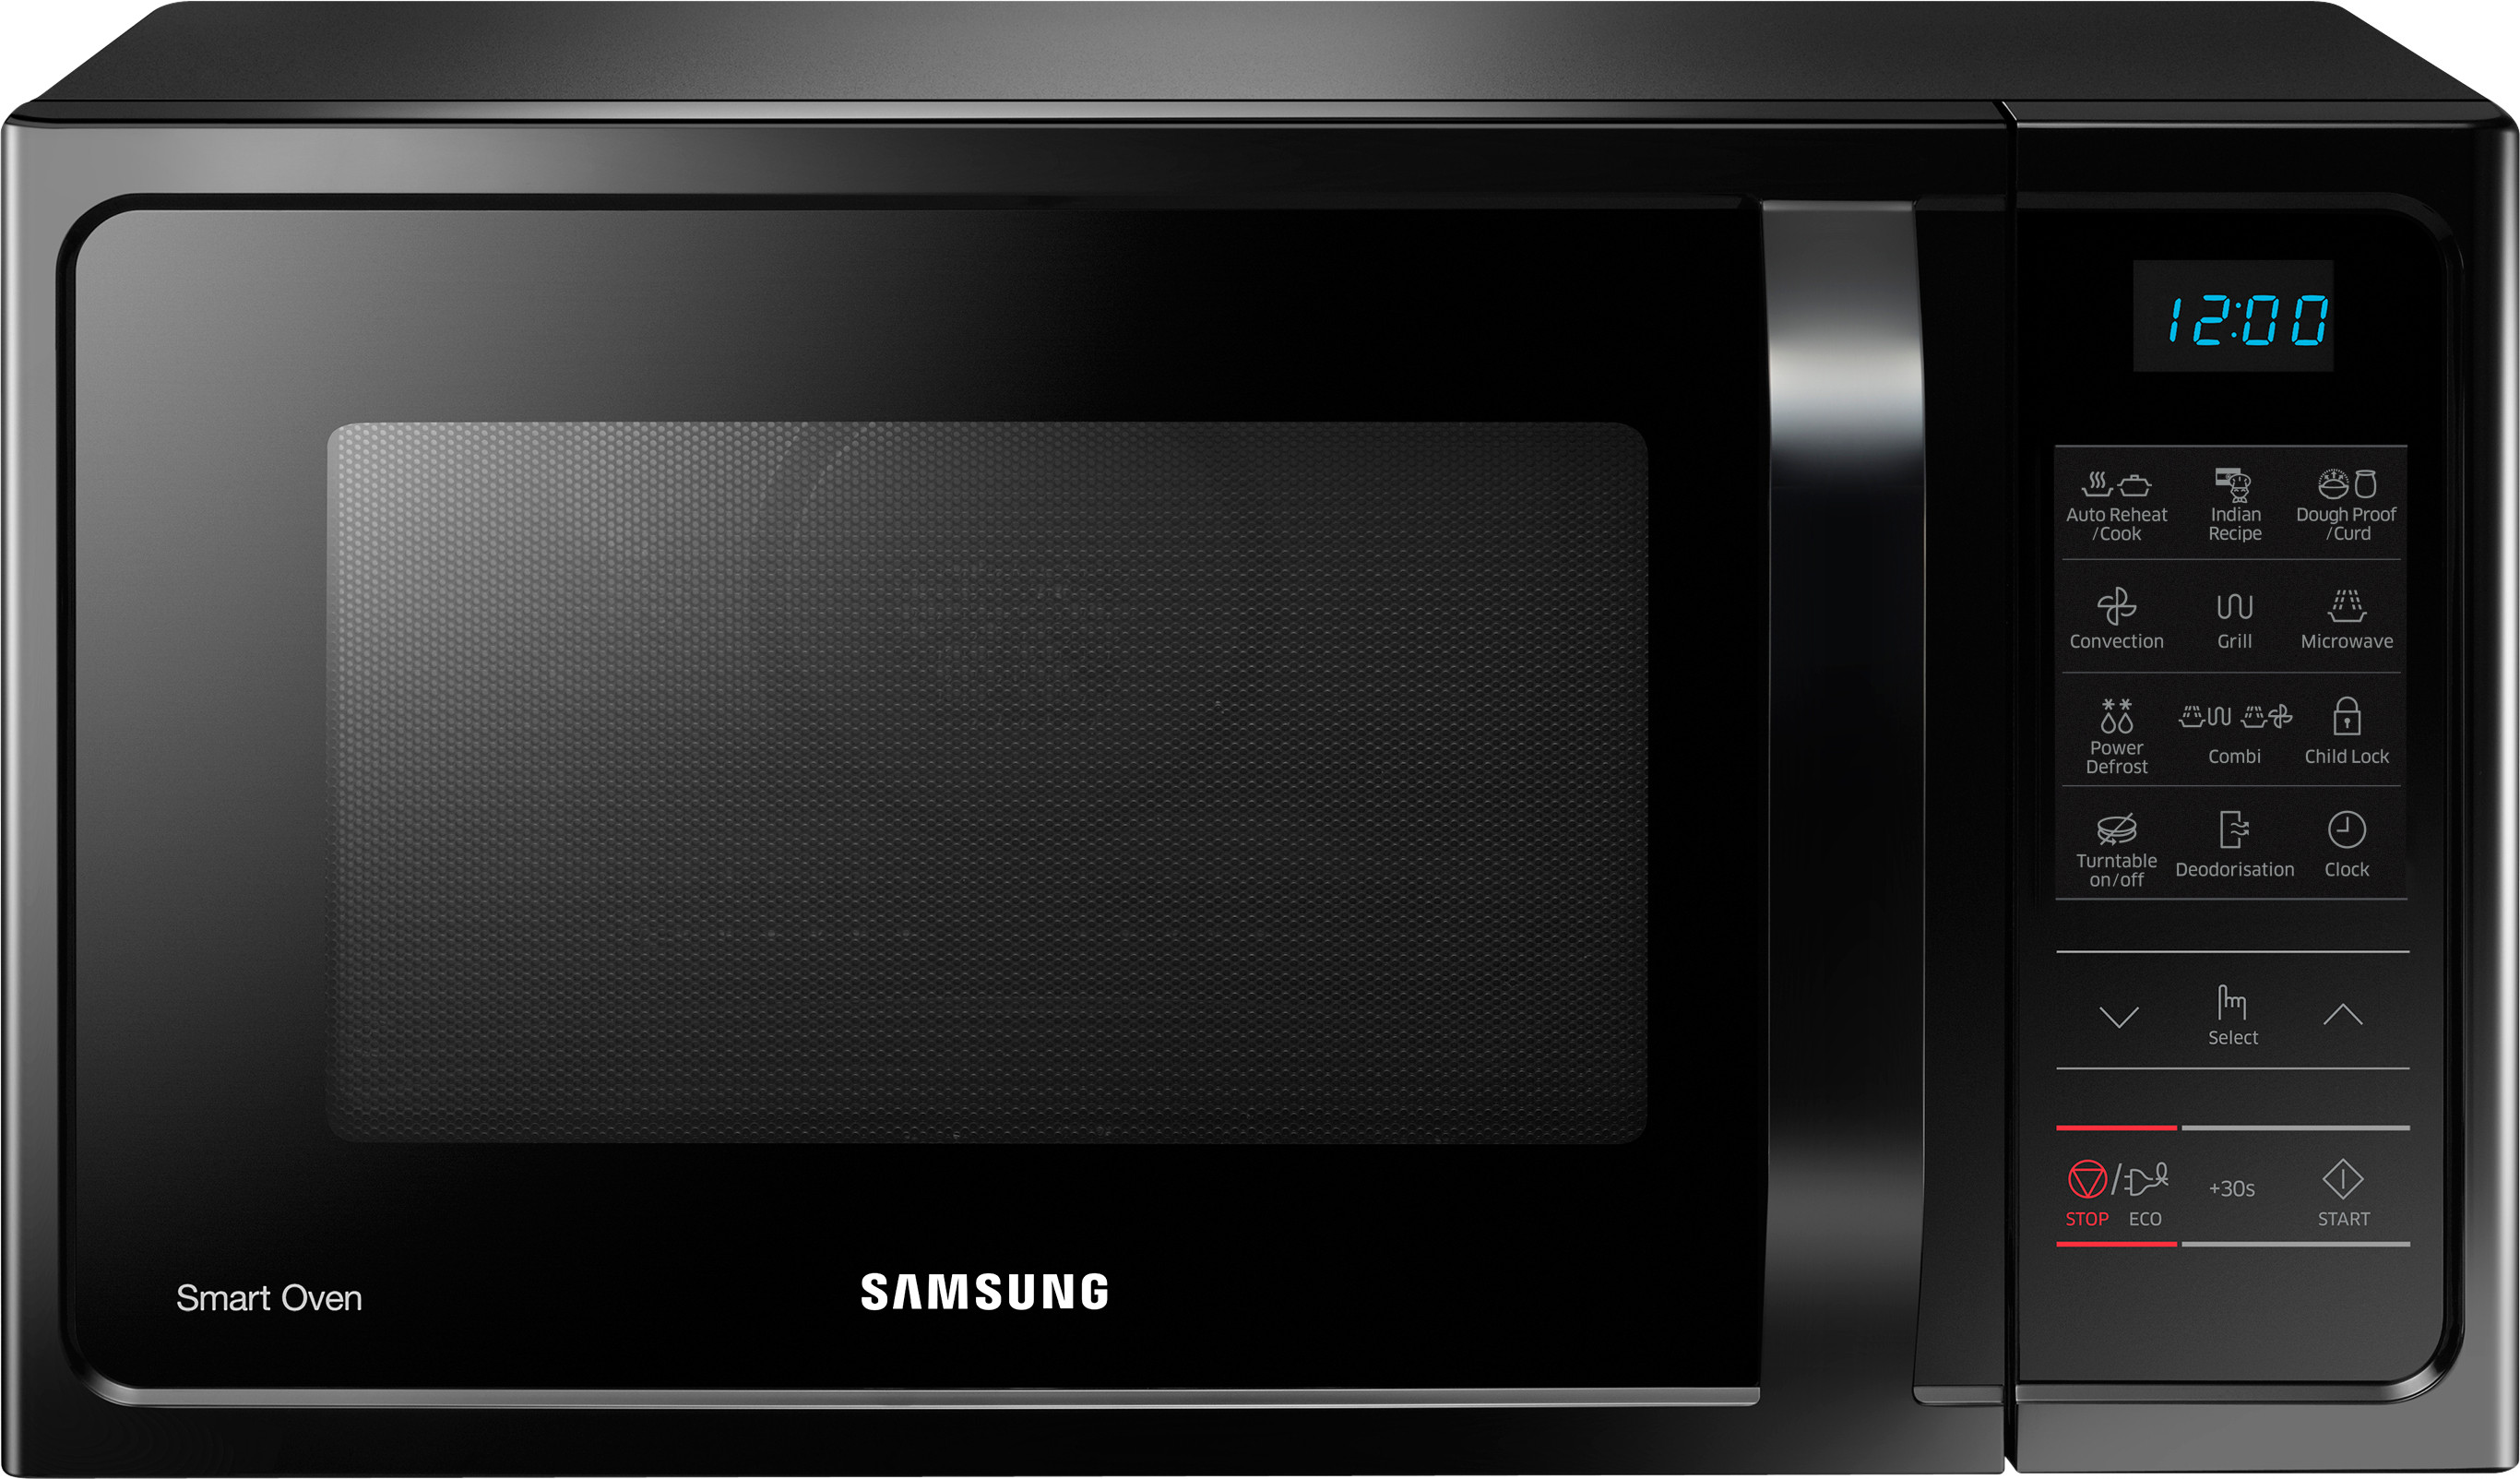 Samsung 28 L Convection Microwave Oven Mc28h5013ak Tl Black